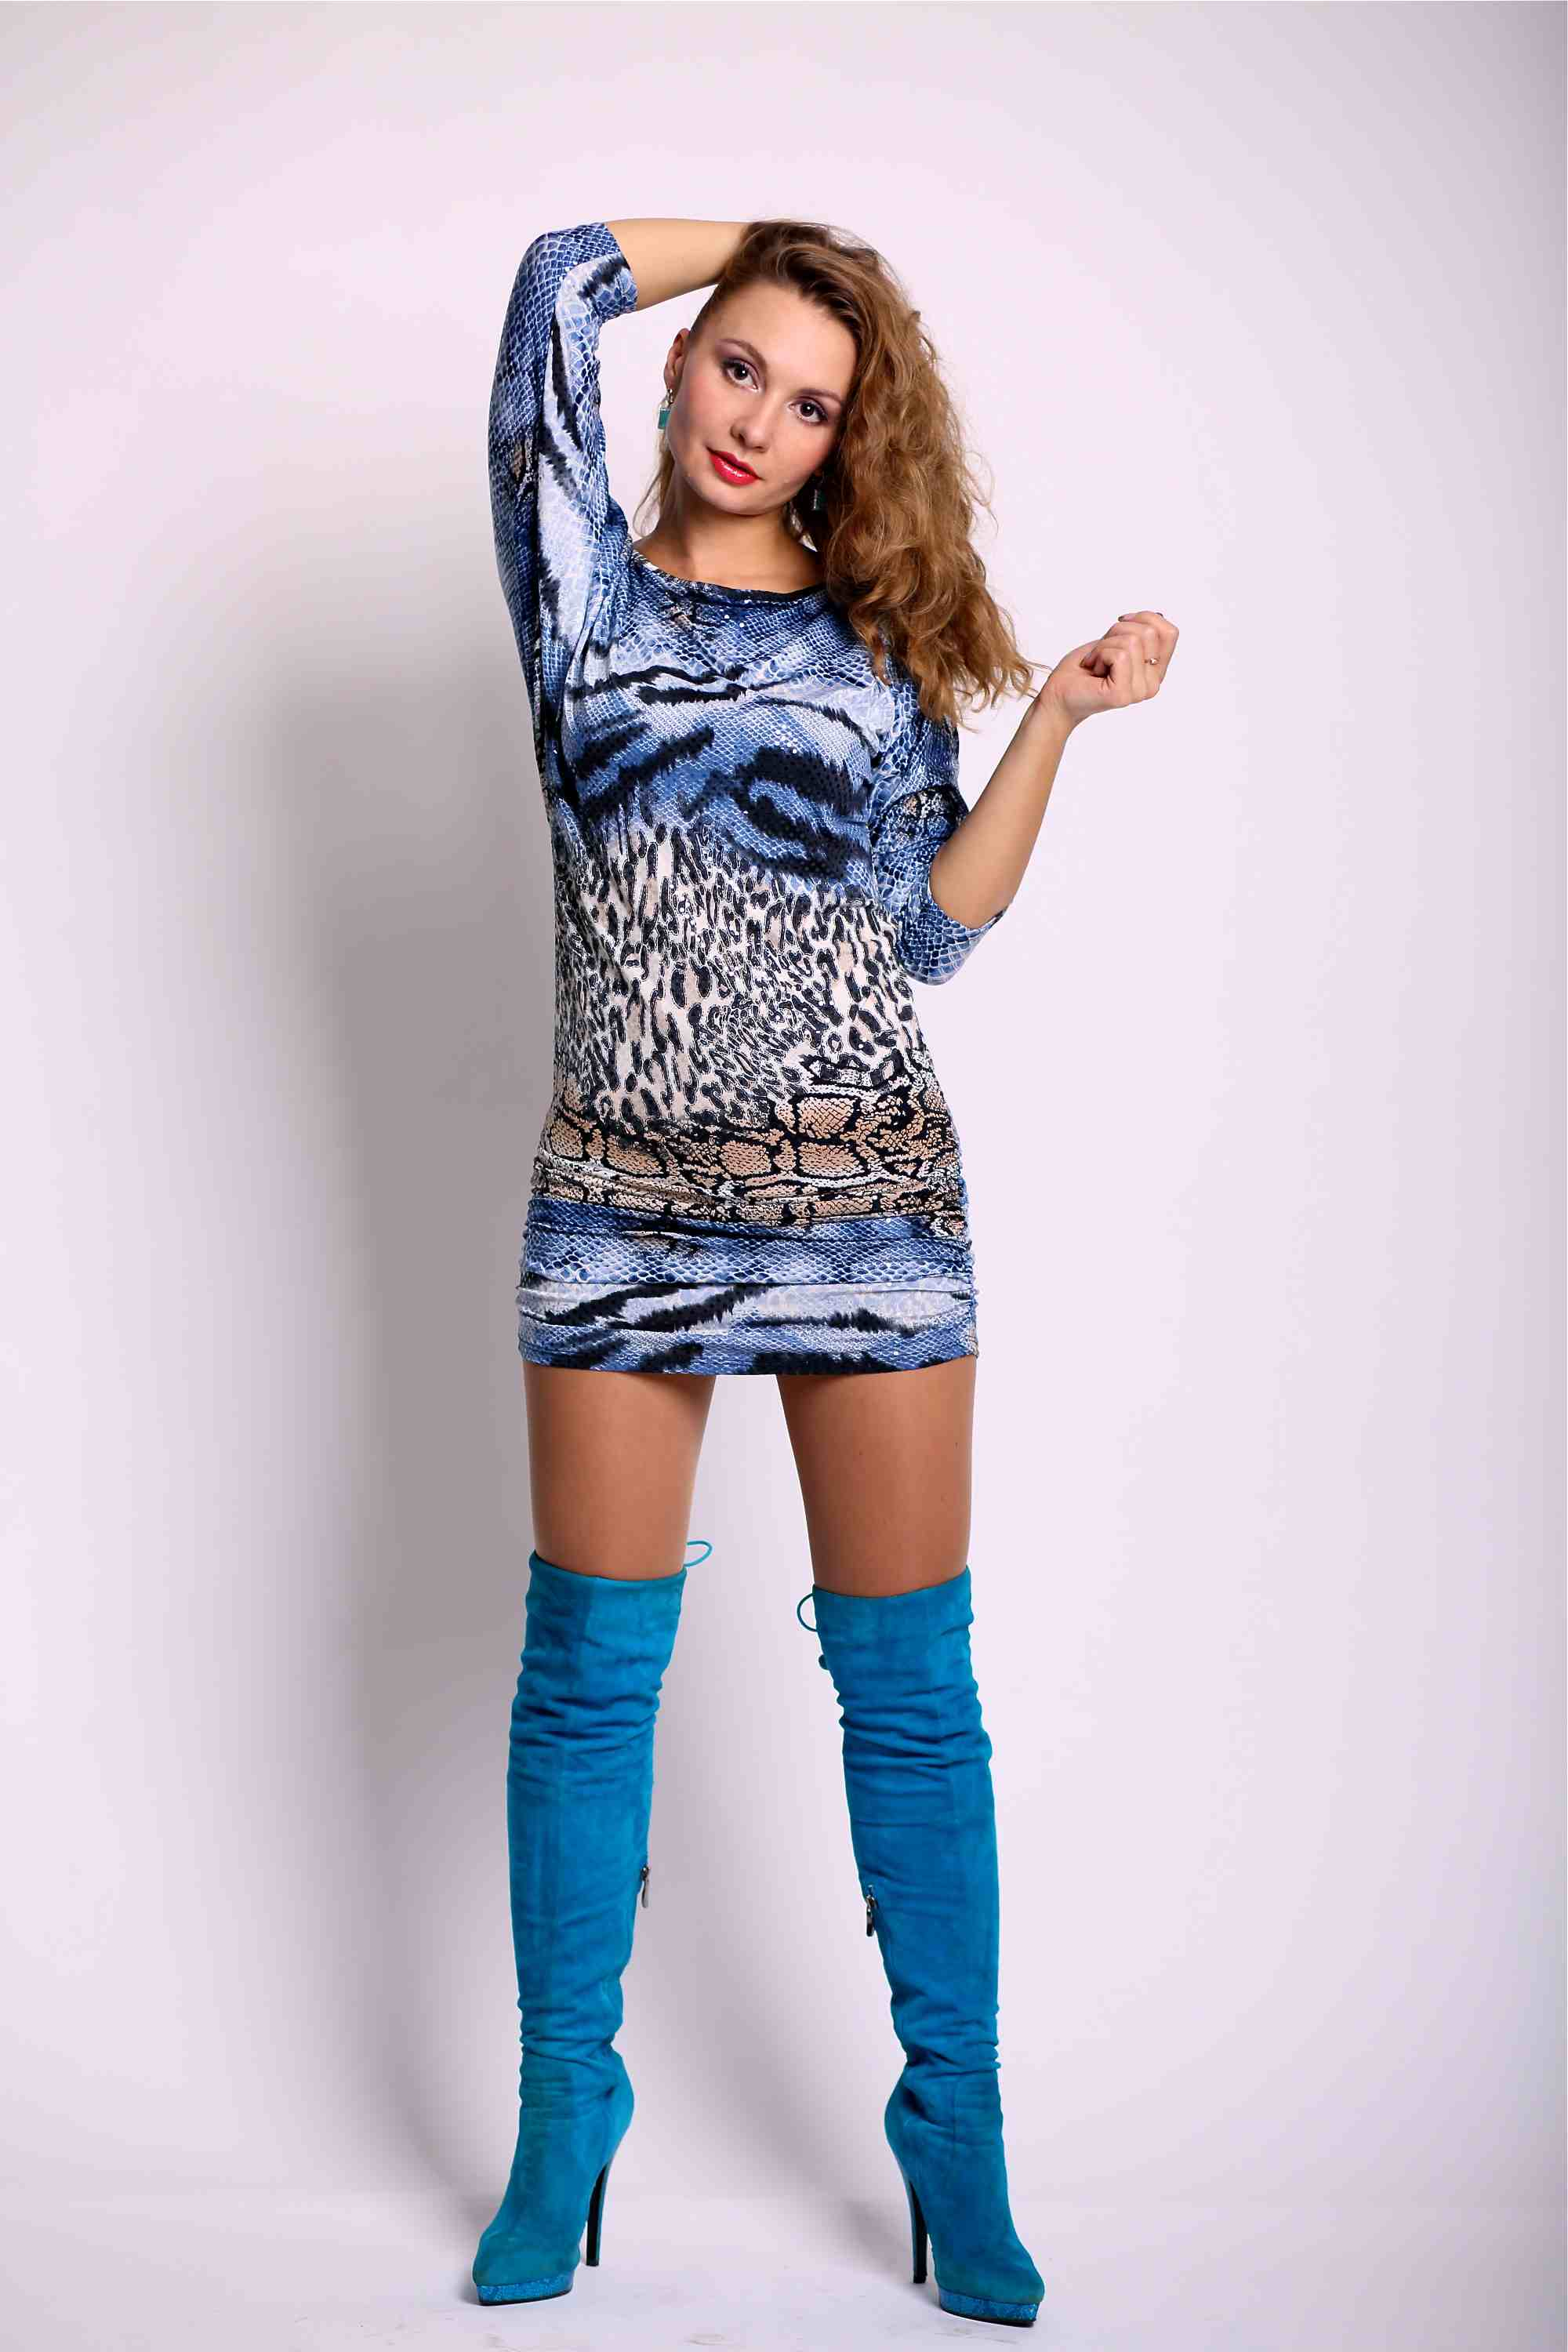 Modeling agencies in tampa new york yulia for New york modeling agencies